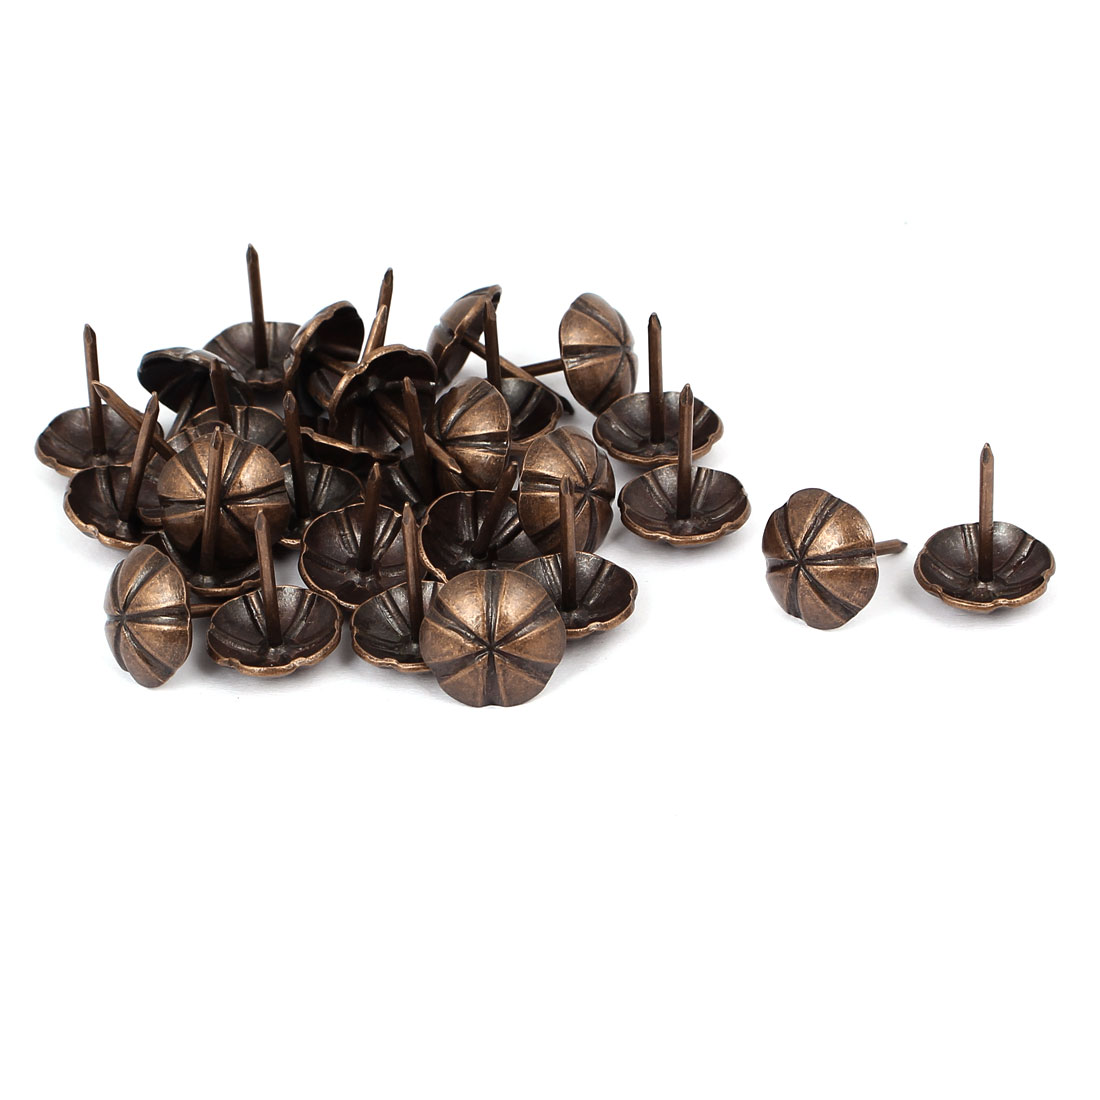 16mm Dia Metal Round Domed Head Upholstery Tack Push Nail Copper Tone 30pcs